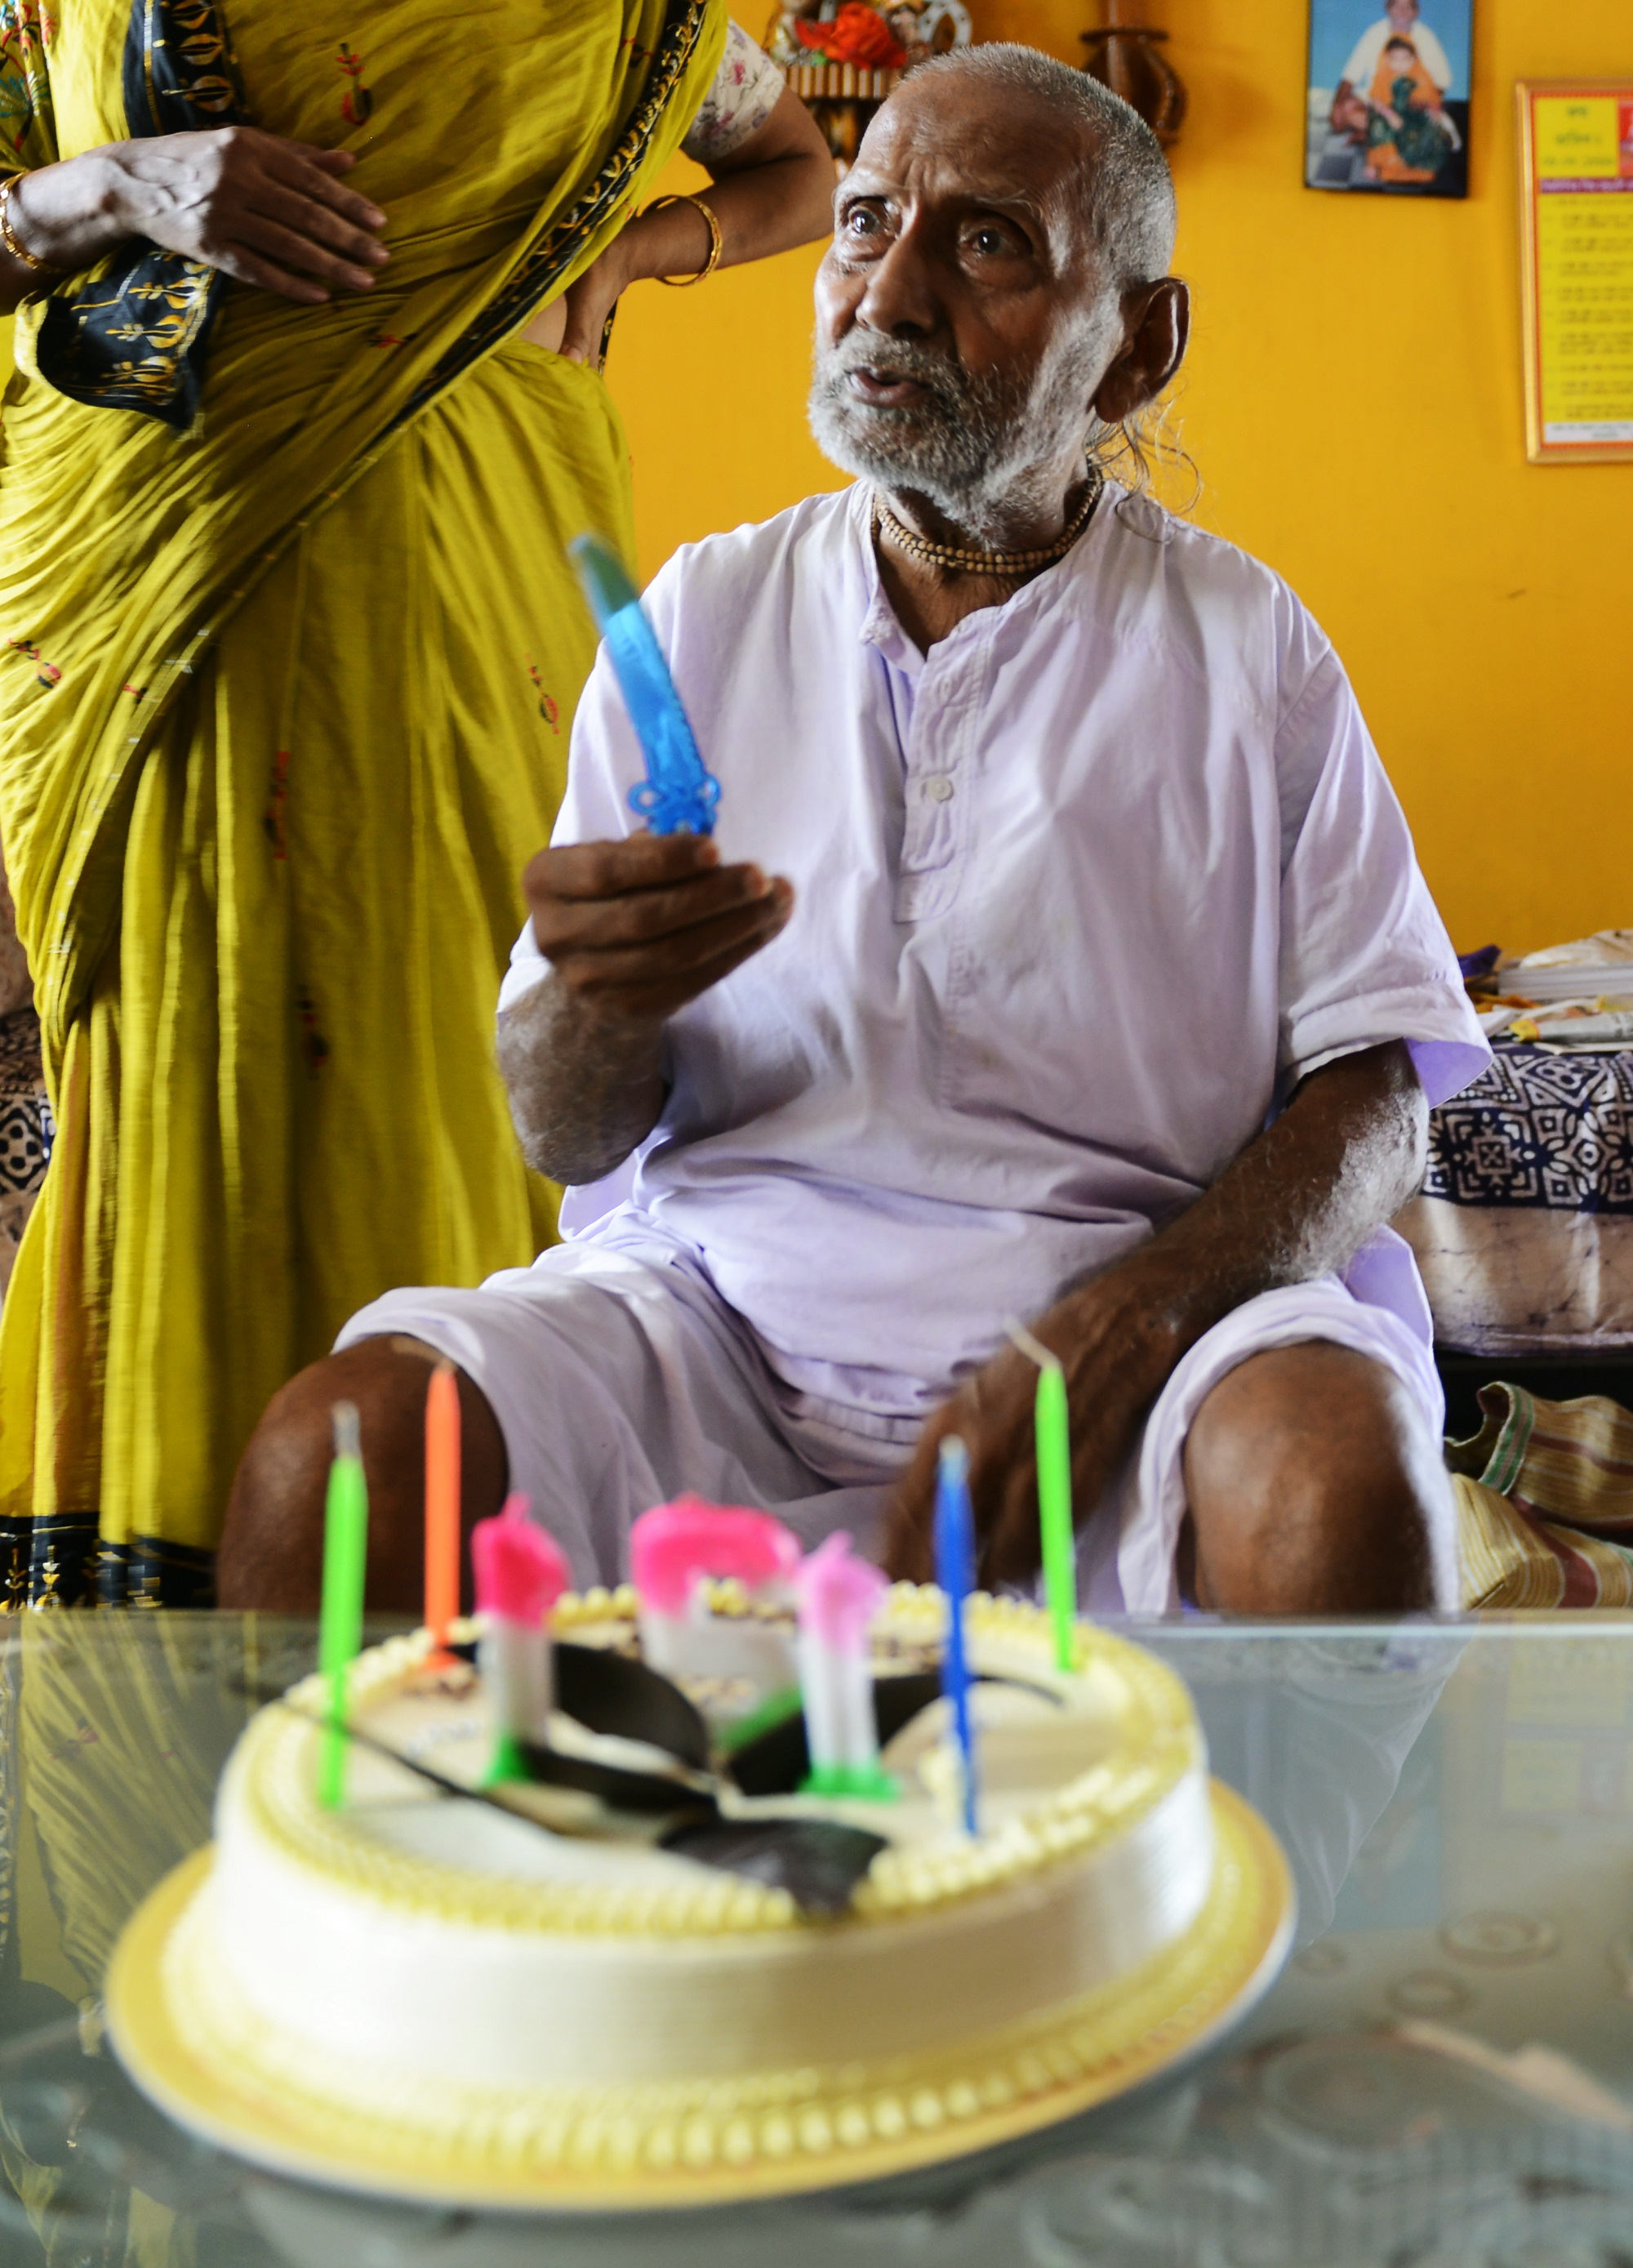 In this photograph taken on August 2, 2016, Indian monk Swami Sivananda reacts after his followers presented him with a birthday cake in Kolkata. An Indian monk who claims to be the oldest man to have ever lived at 120 years, says he owes his longevity to daily yoga and a life without sex or spices. Born on August 8, 1896, according to his passport, Hindu monk Swami Sivananda's life has spanned three centuries. He is now applying to Guinness World Records to stake his claim to the distinction. / AFP PHOTO / Dibyangshu SARKAR / TO GO WITH AFP STORY: ' India-Lifestyle-Oldest-Man' Feature by Dibyangshu SARKAR